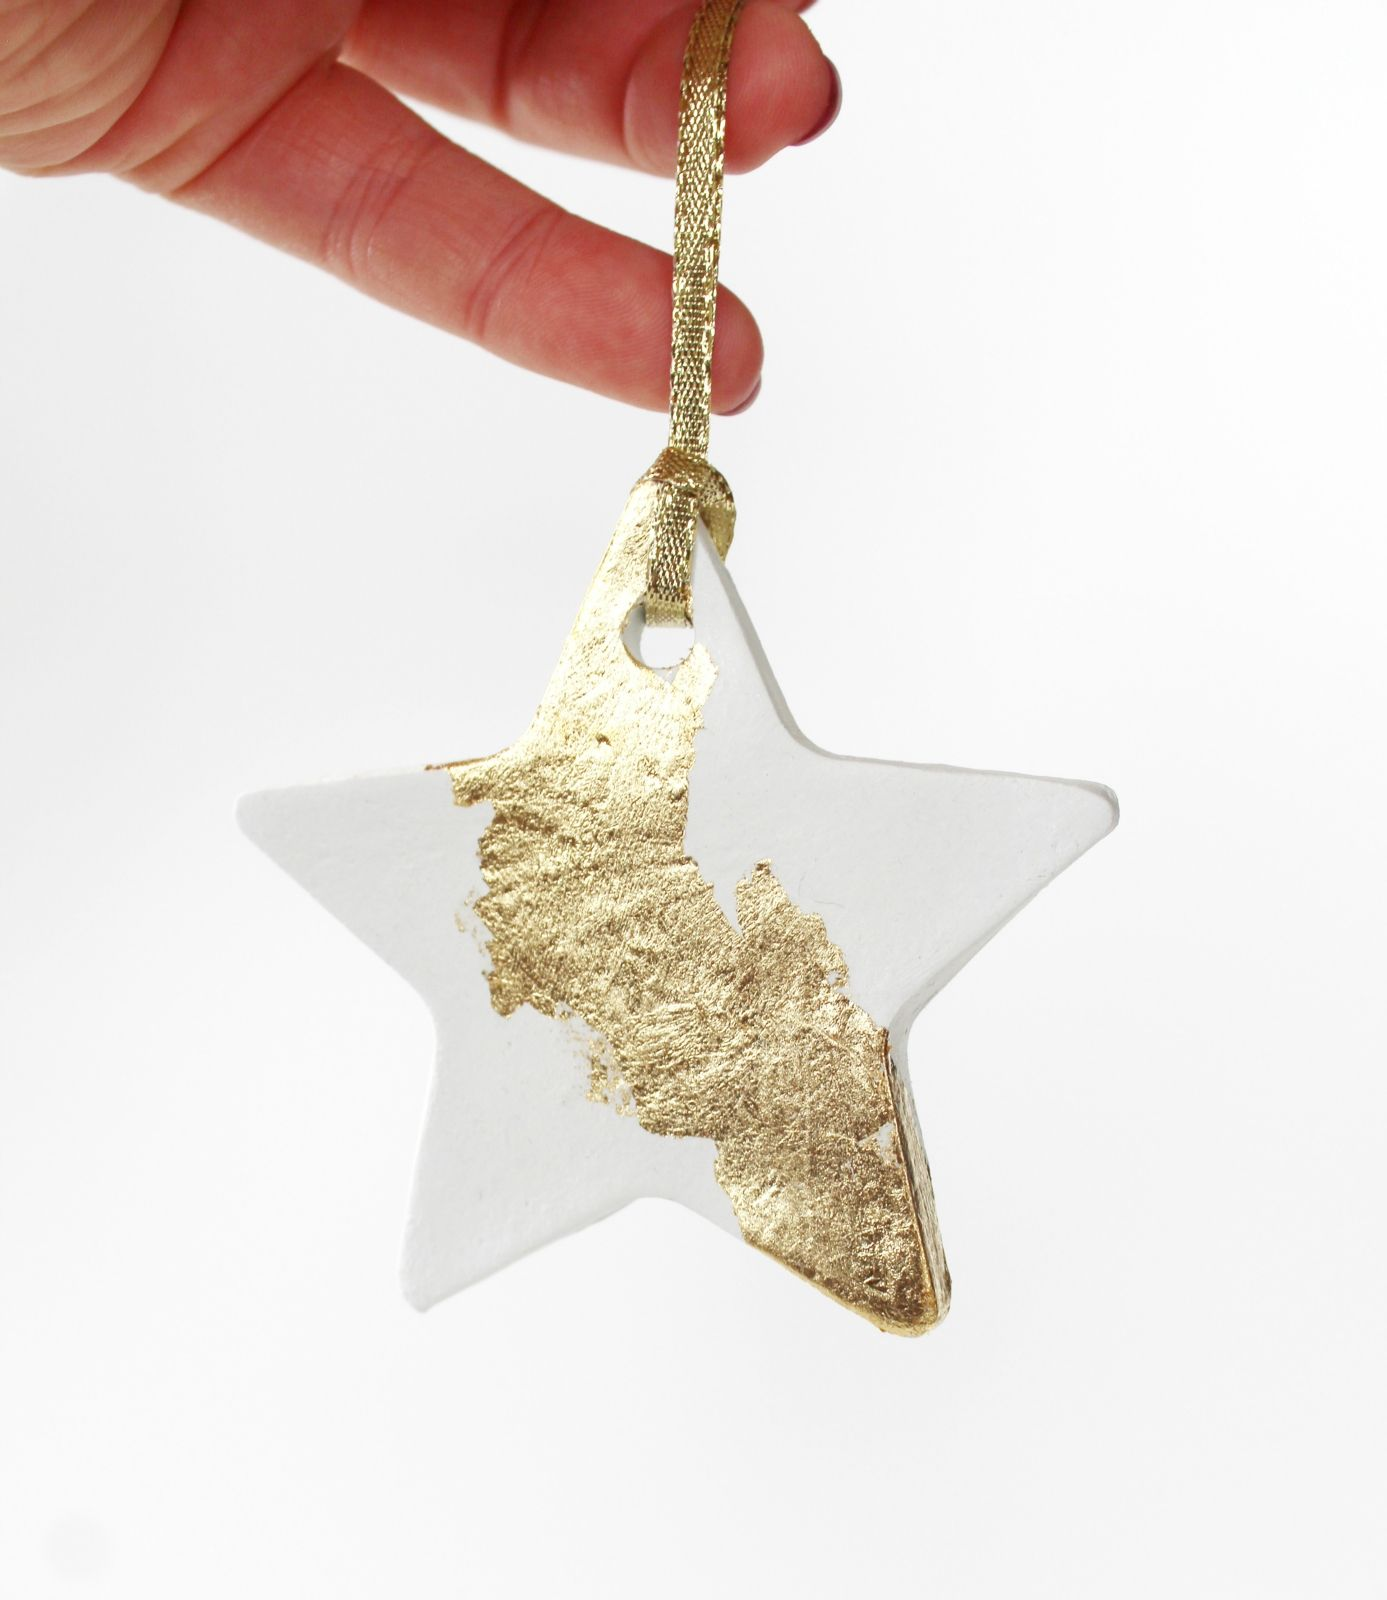 1 Large Gold Star Christmas Tree Decoration Ceramic Festive Clay Ornament Gold And White Holiday De Christmas Tree Decorations Holiday Decor Clay Ornaments